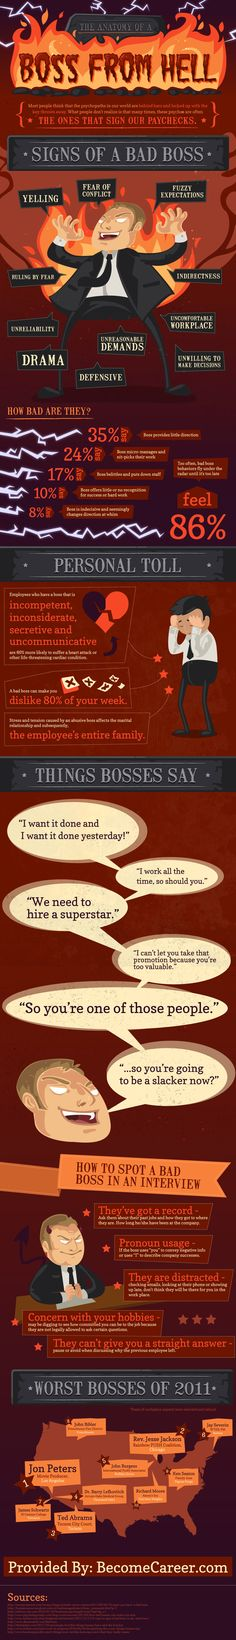 The Boss from Hell #infographic